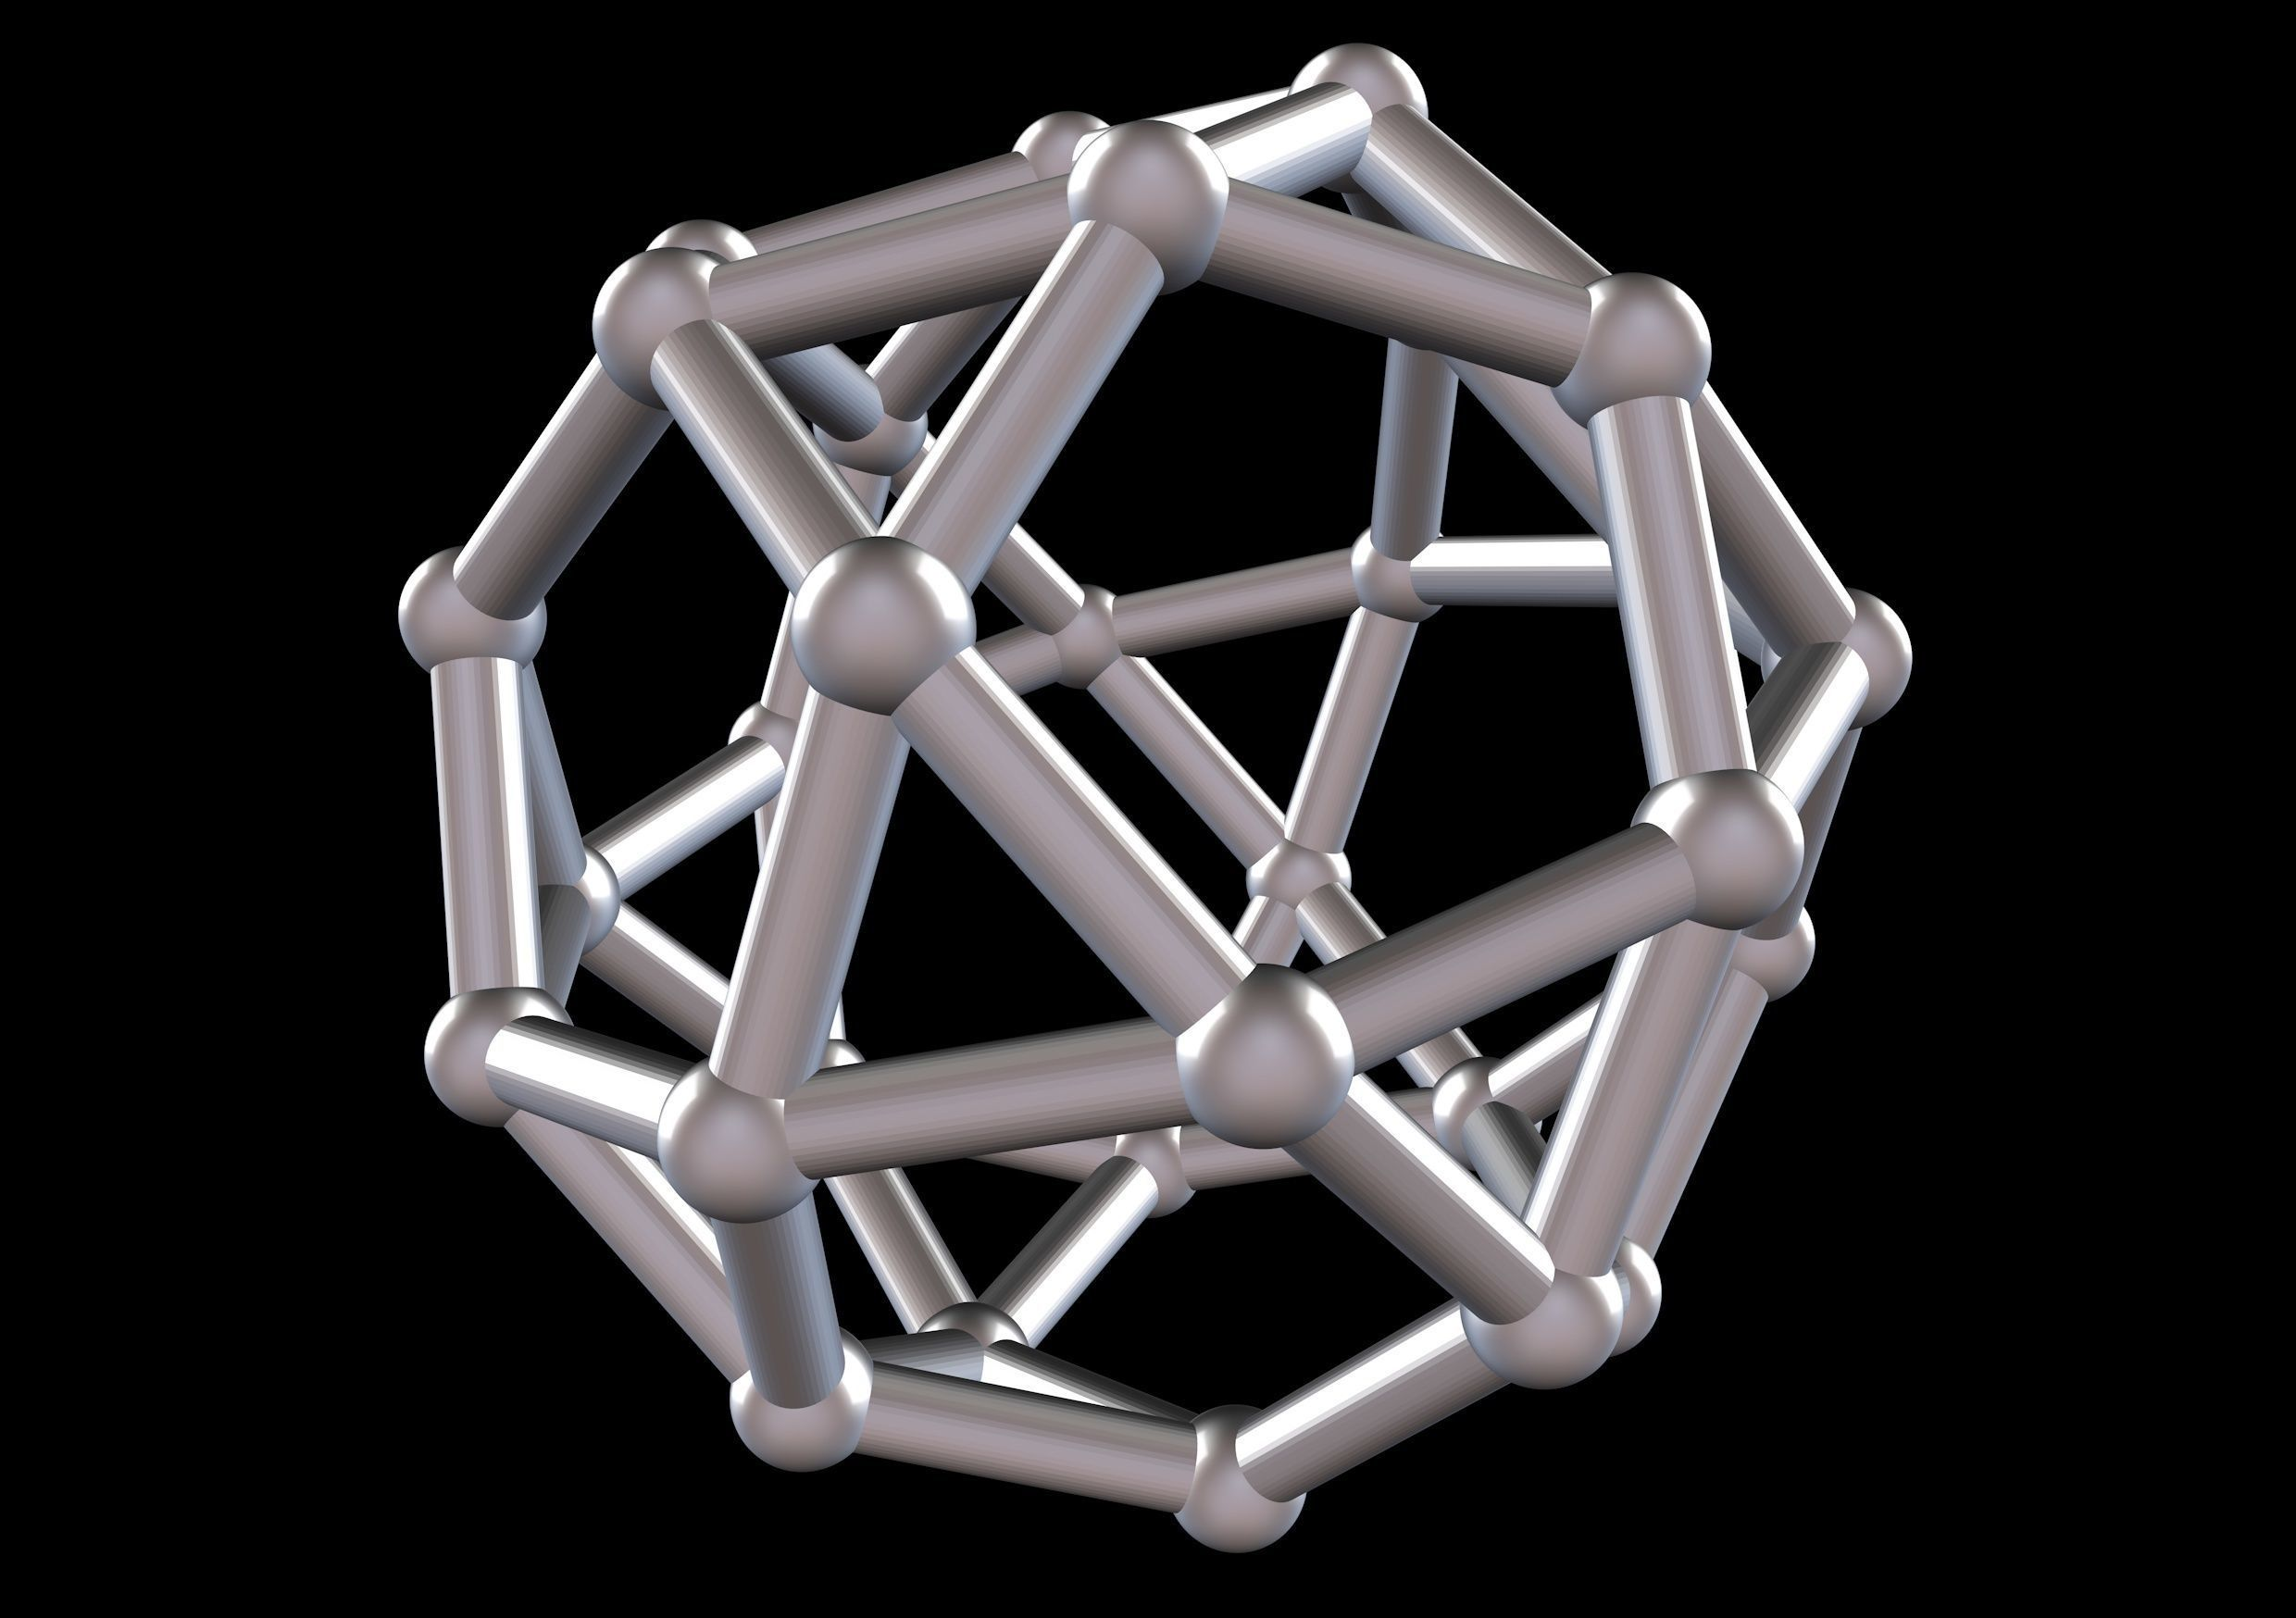 026 Mathart - Archimedean Solids - Icosidodecahedron 02 - 10 cm